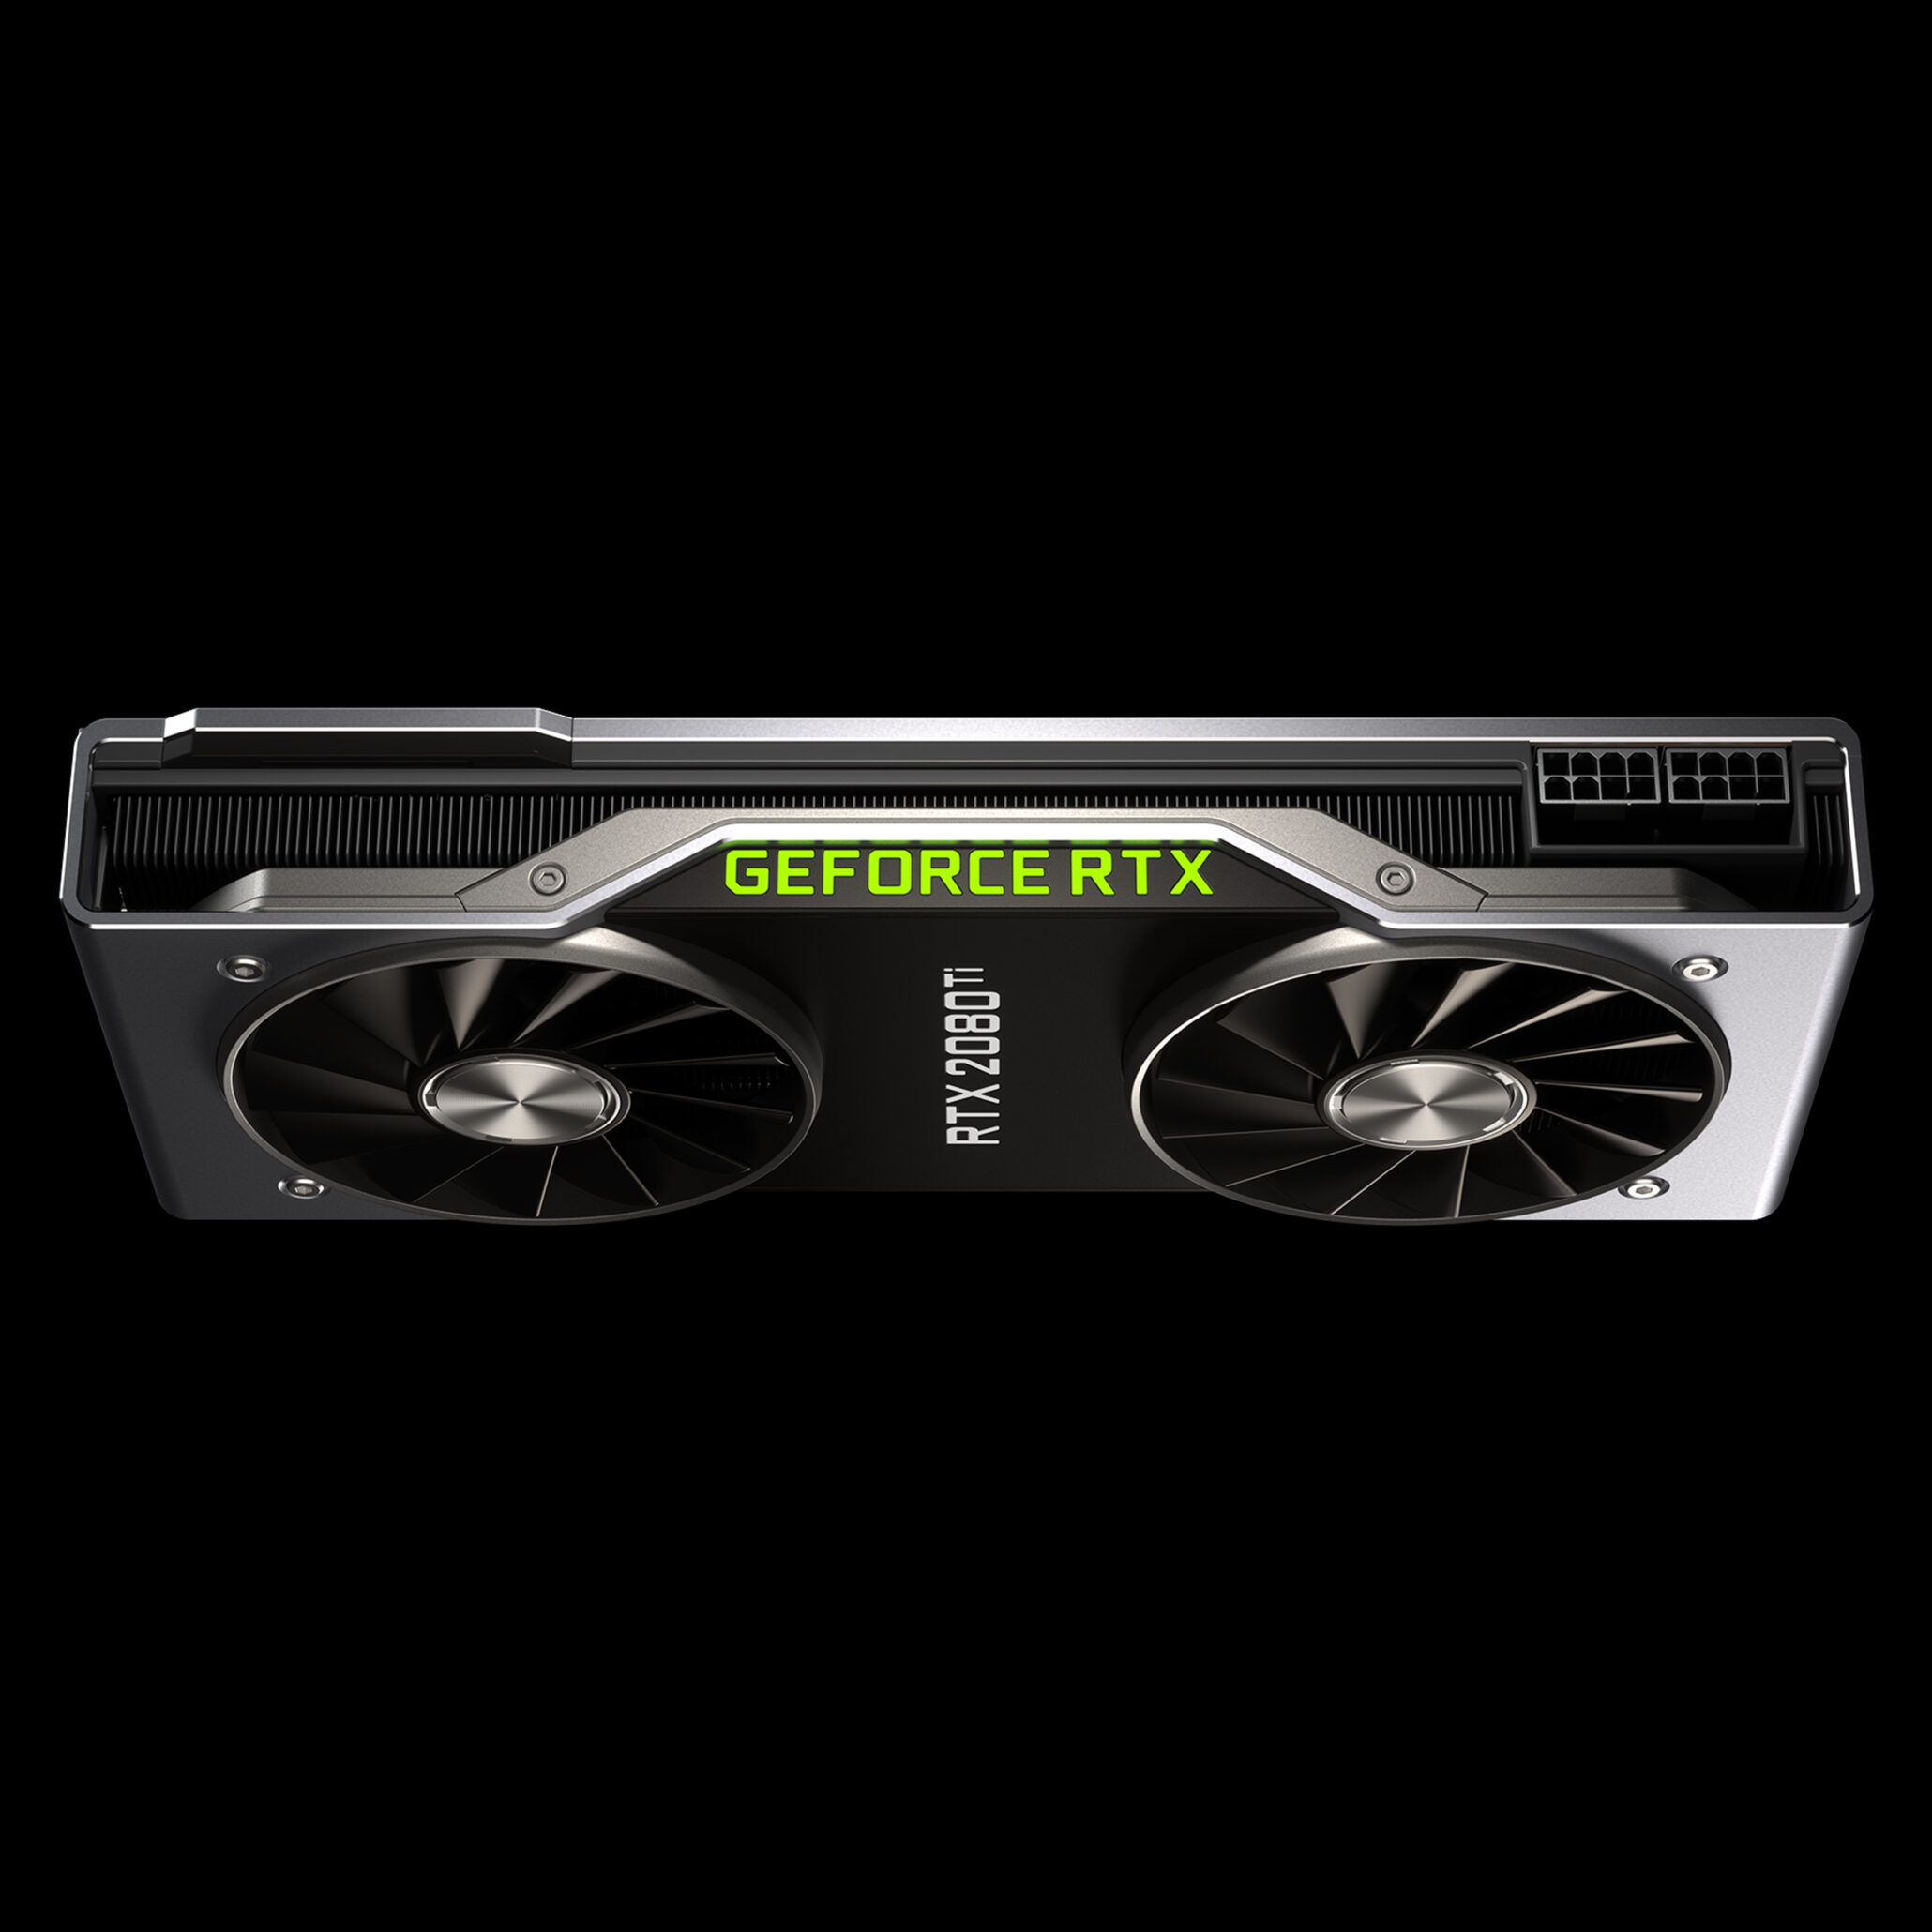 NVIDIA GeForce RTX 2080 Ti 11 GB Flagship Officially Unleashed for